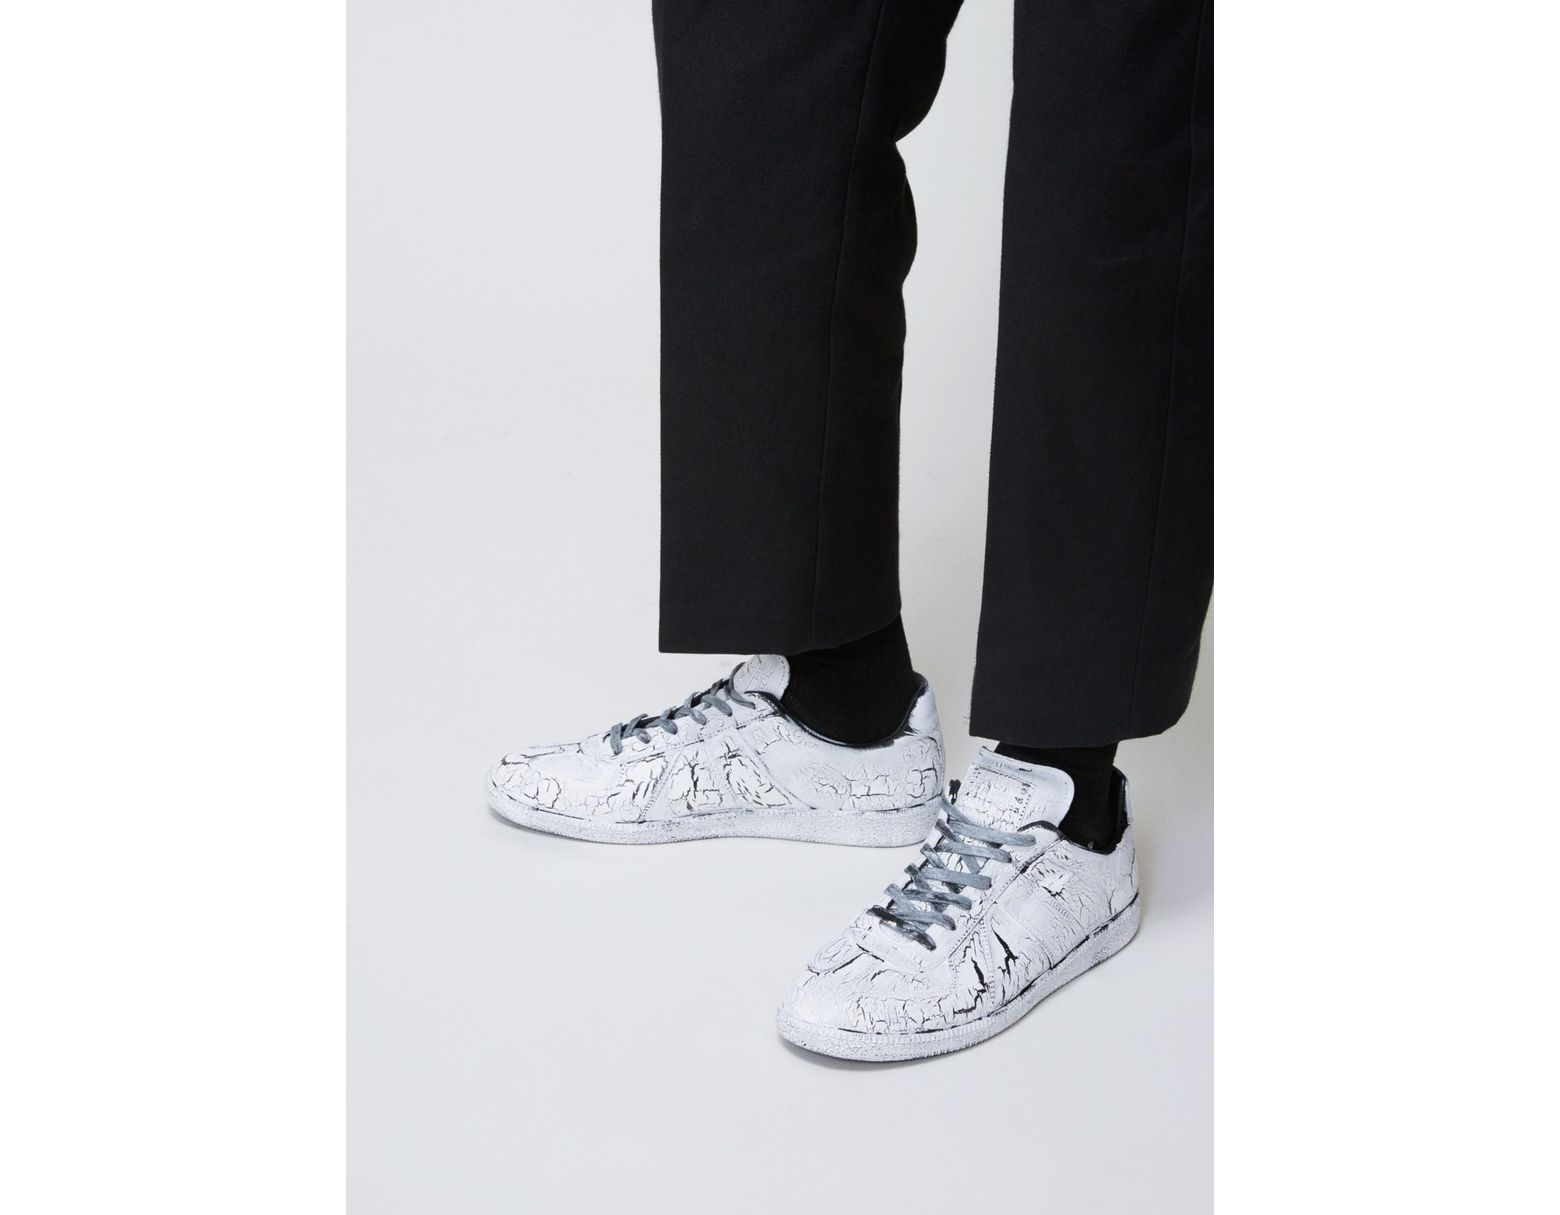 low priced 89f38 e971a Maison Margiela White Painted Replica Sneaker in White for Men - Lyst